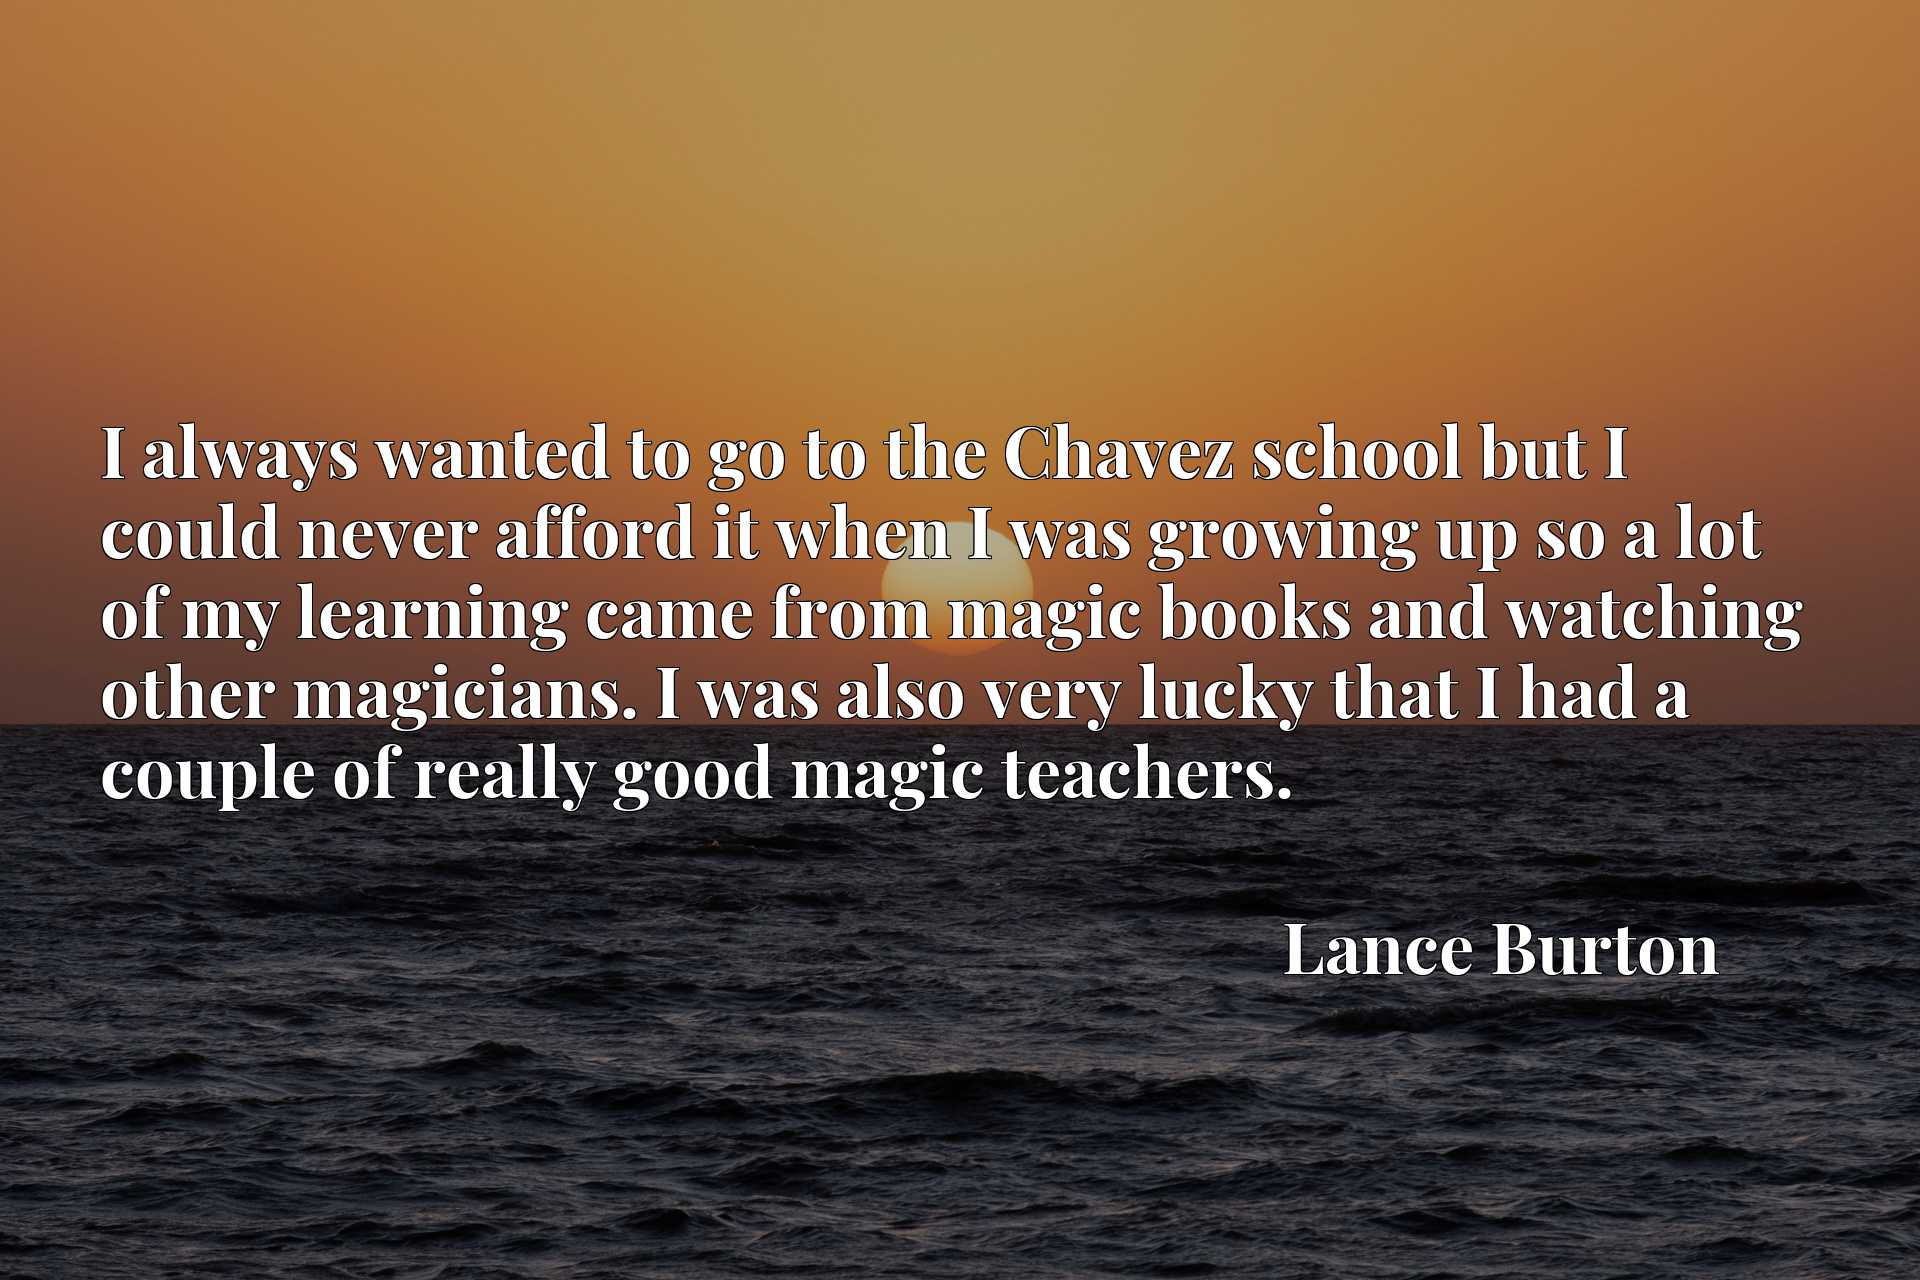 I always wanted to go to the Chavez school but I could never afford it when I was growing up so a lot of my learning came from magic books and watching other magicians. I was also very lucky that I had a couple of really good magic teachers.